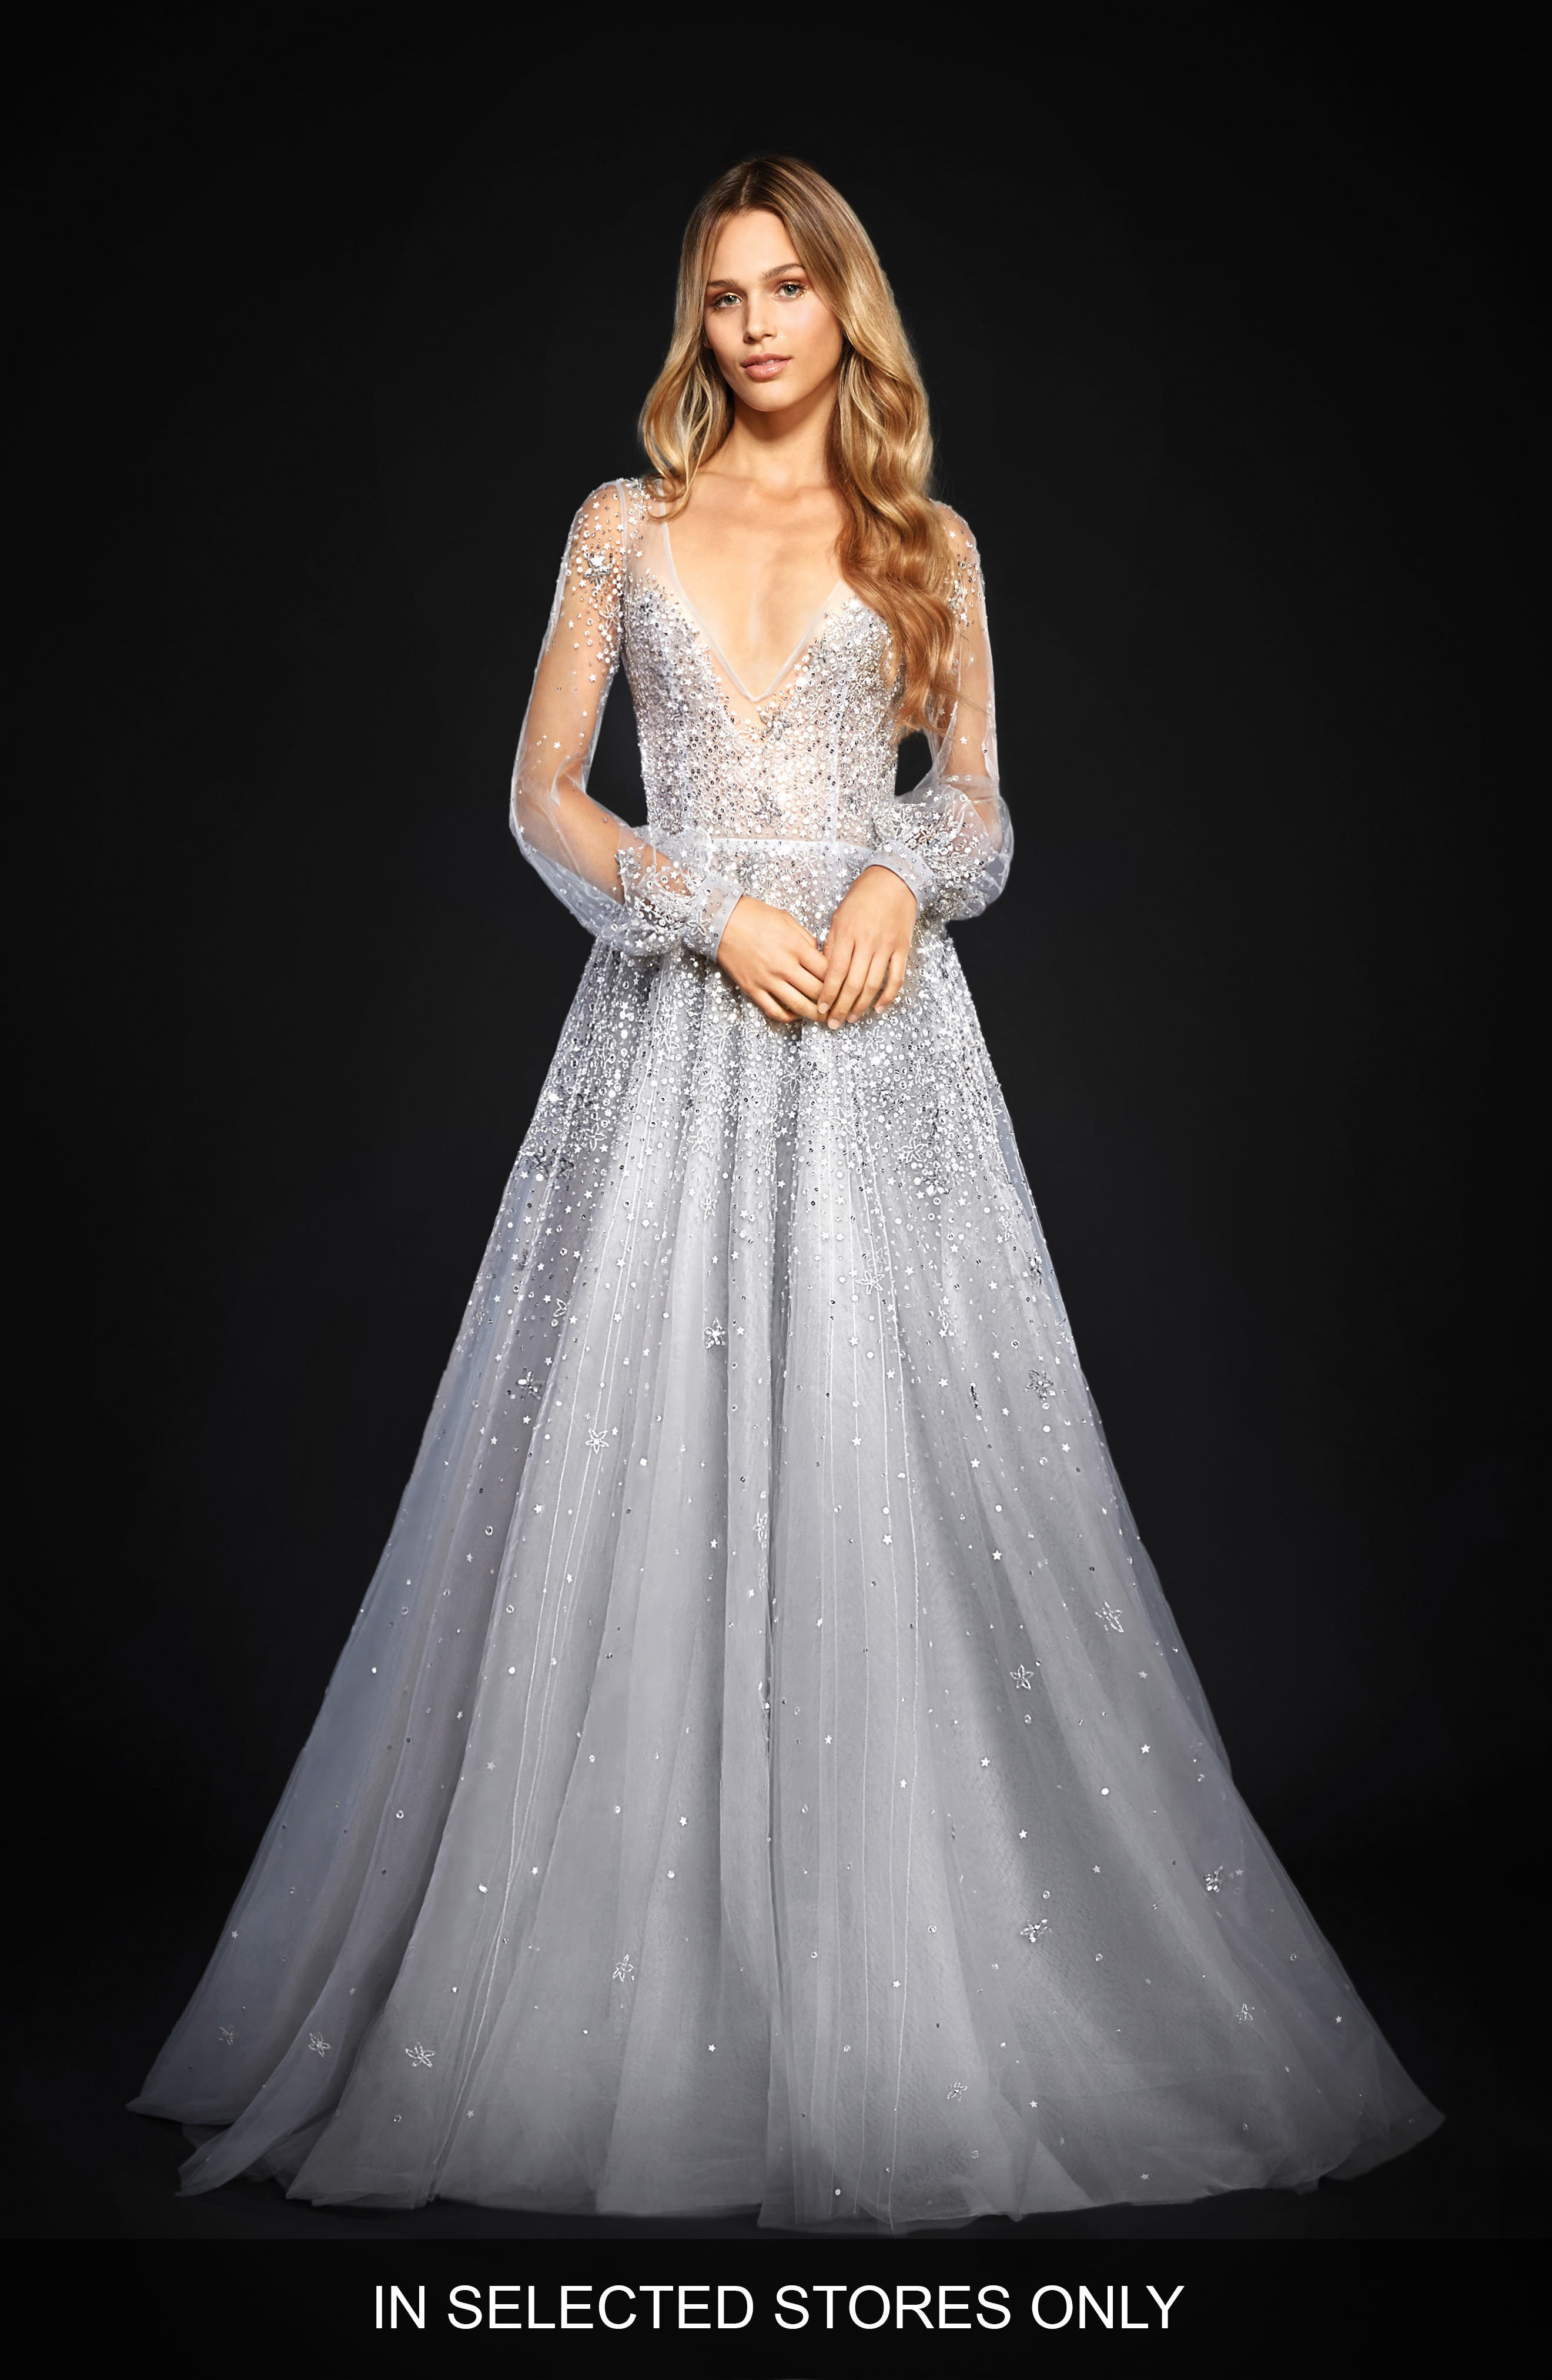 Alternate Image 1 Selected - Hayley Paige Lumi Embellished Long Sleeve Tulle Ballgown